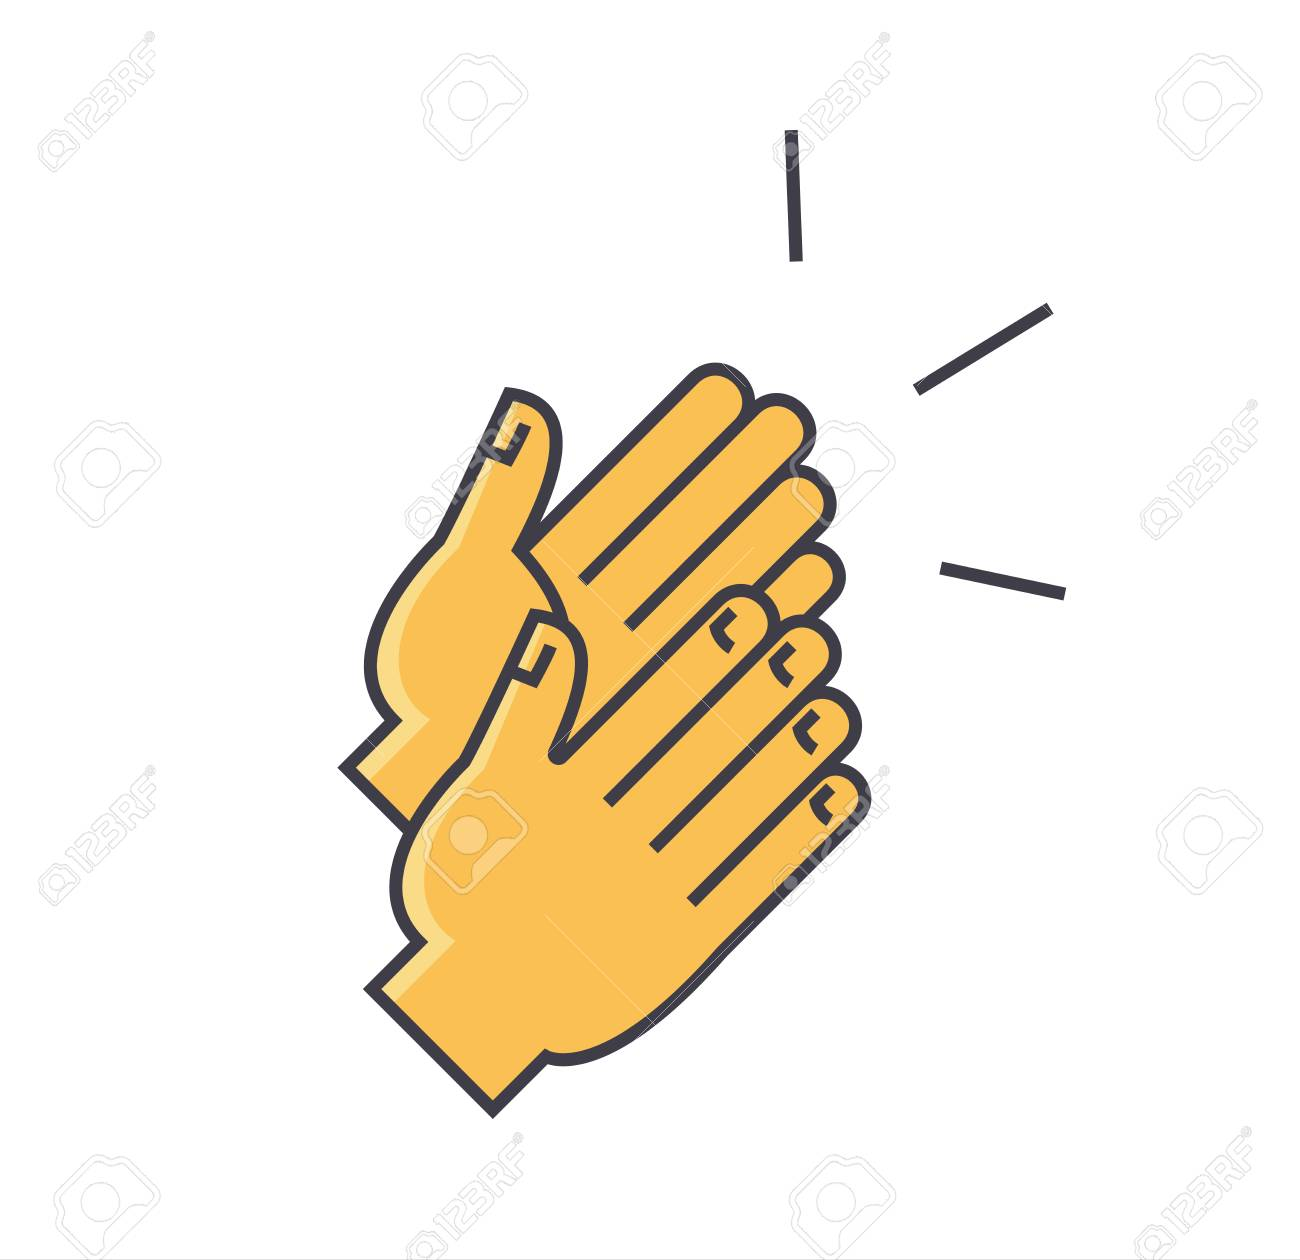 applause clapping hands concept flat linear illustration isolated